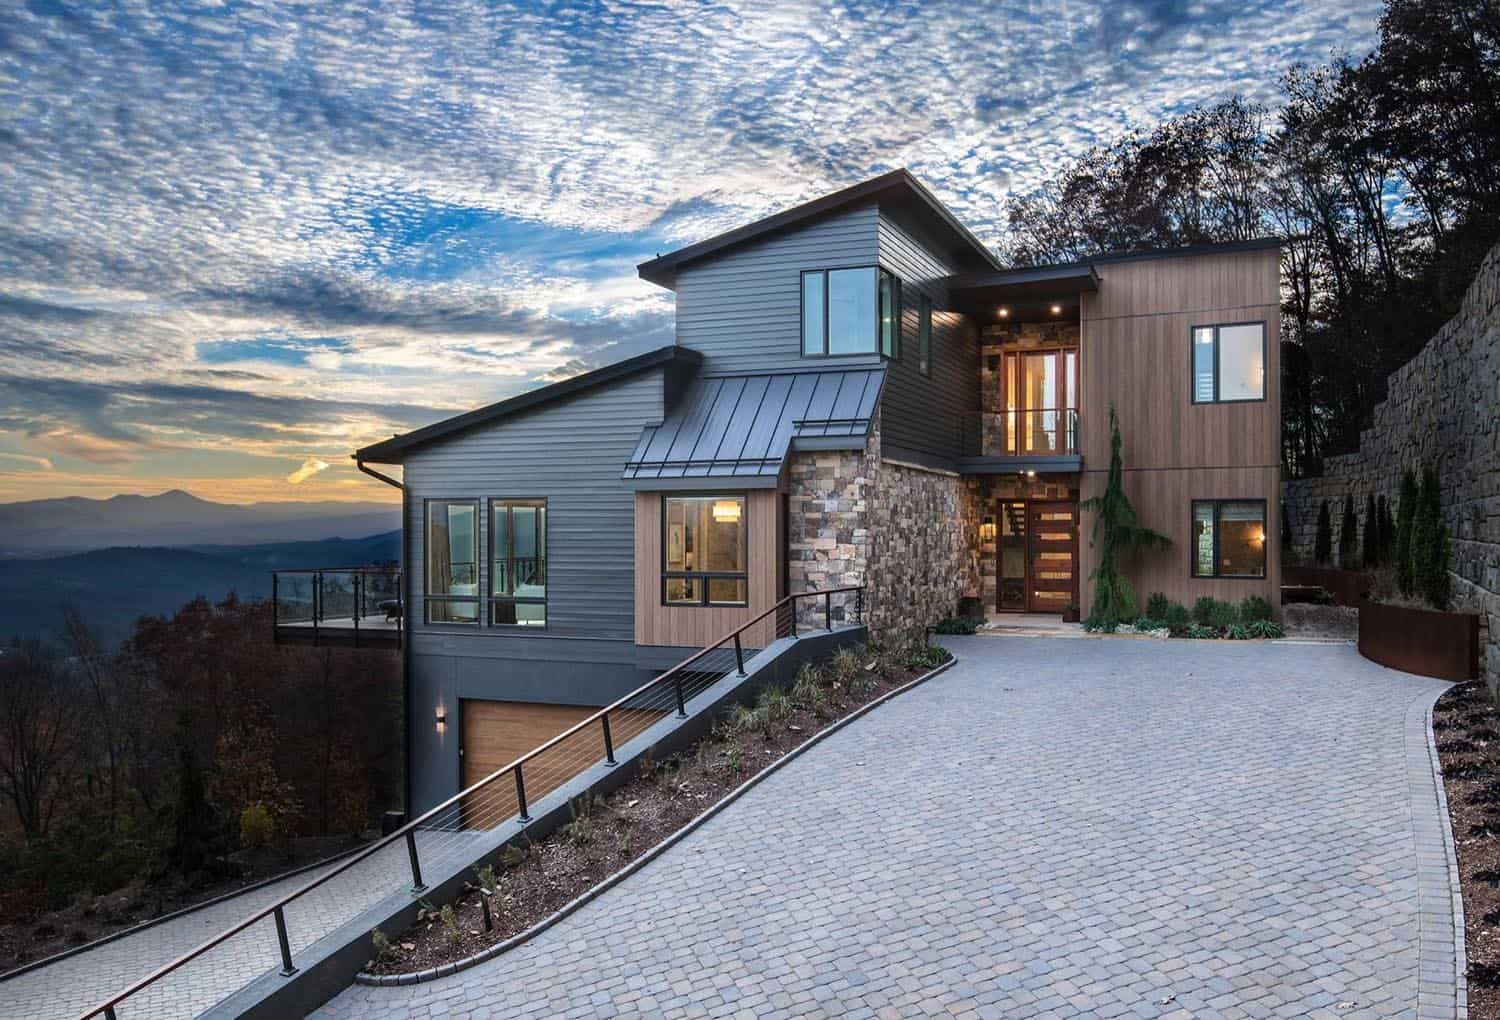 Beautifully Inspiring Mountain Home Nestled In The Blue Ridge Mountains In 2020 Building Design Contemporary House Exterior House Exterior